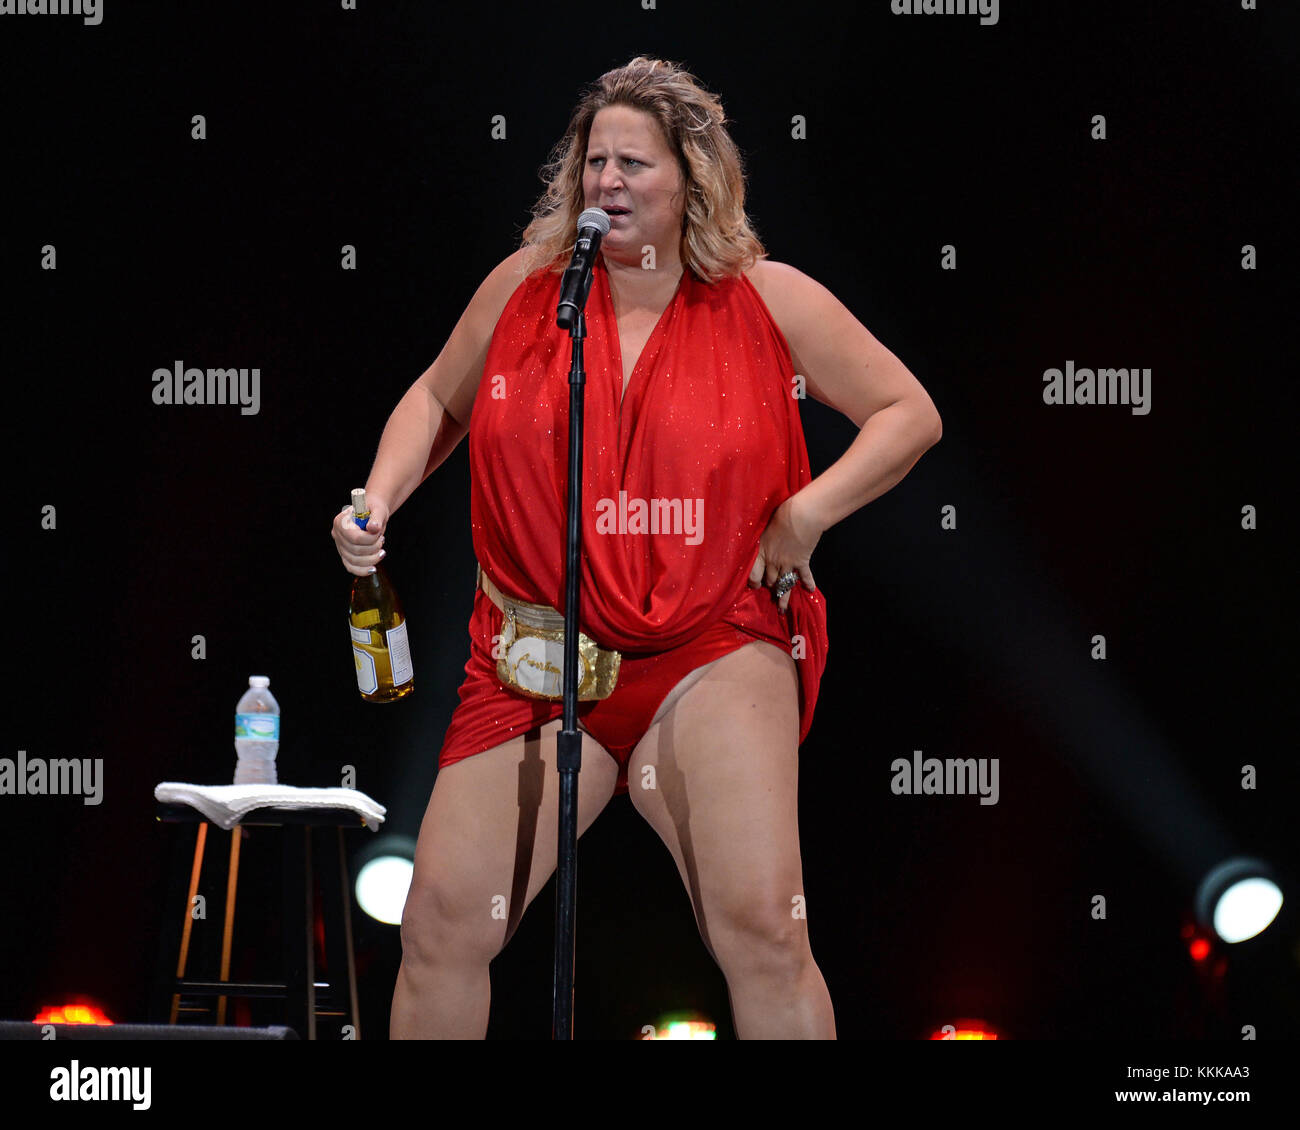 Watch Bridget Everett video